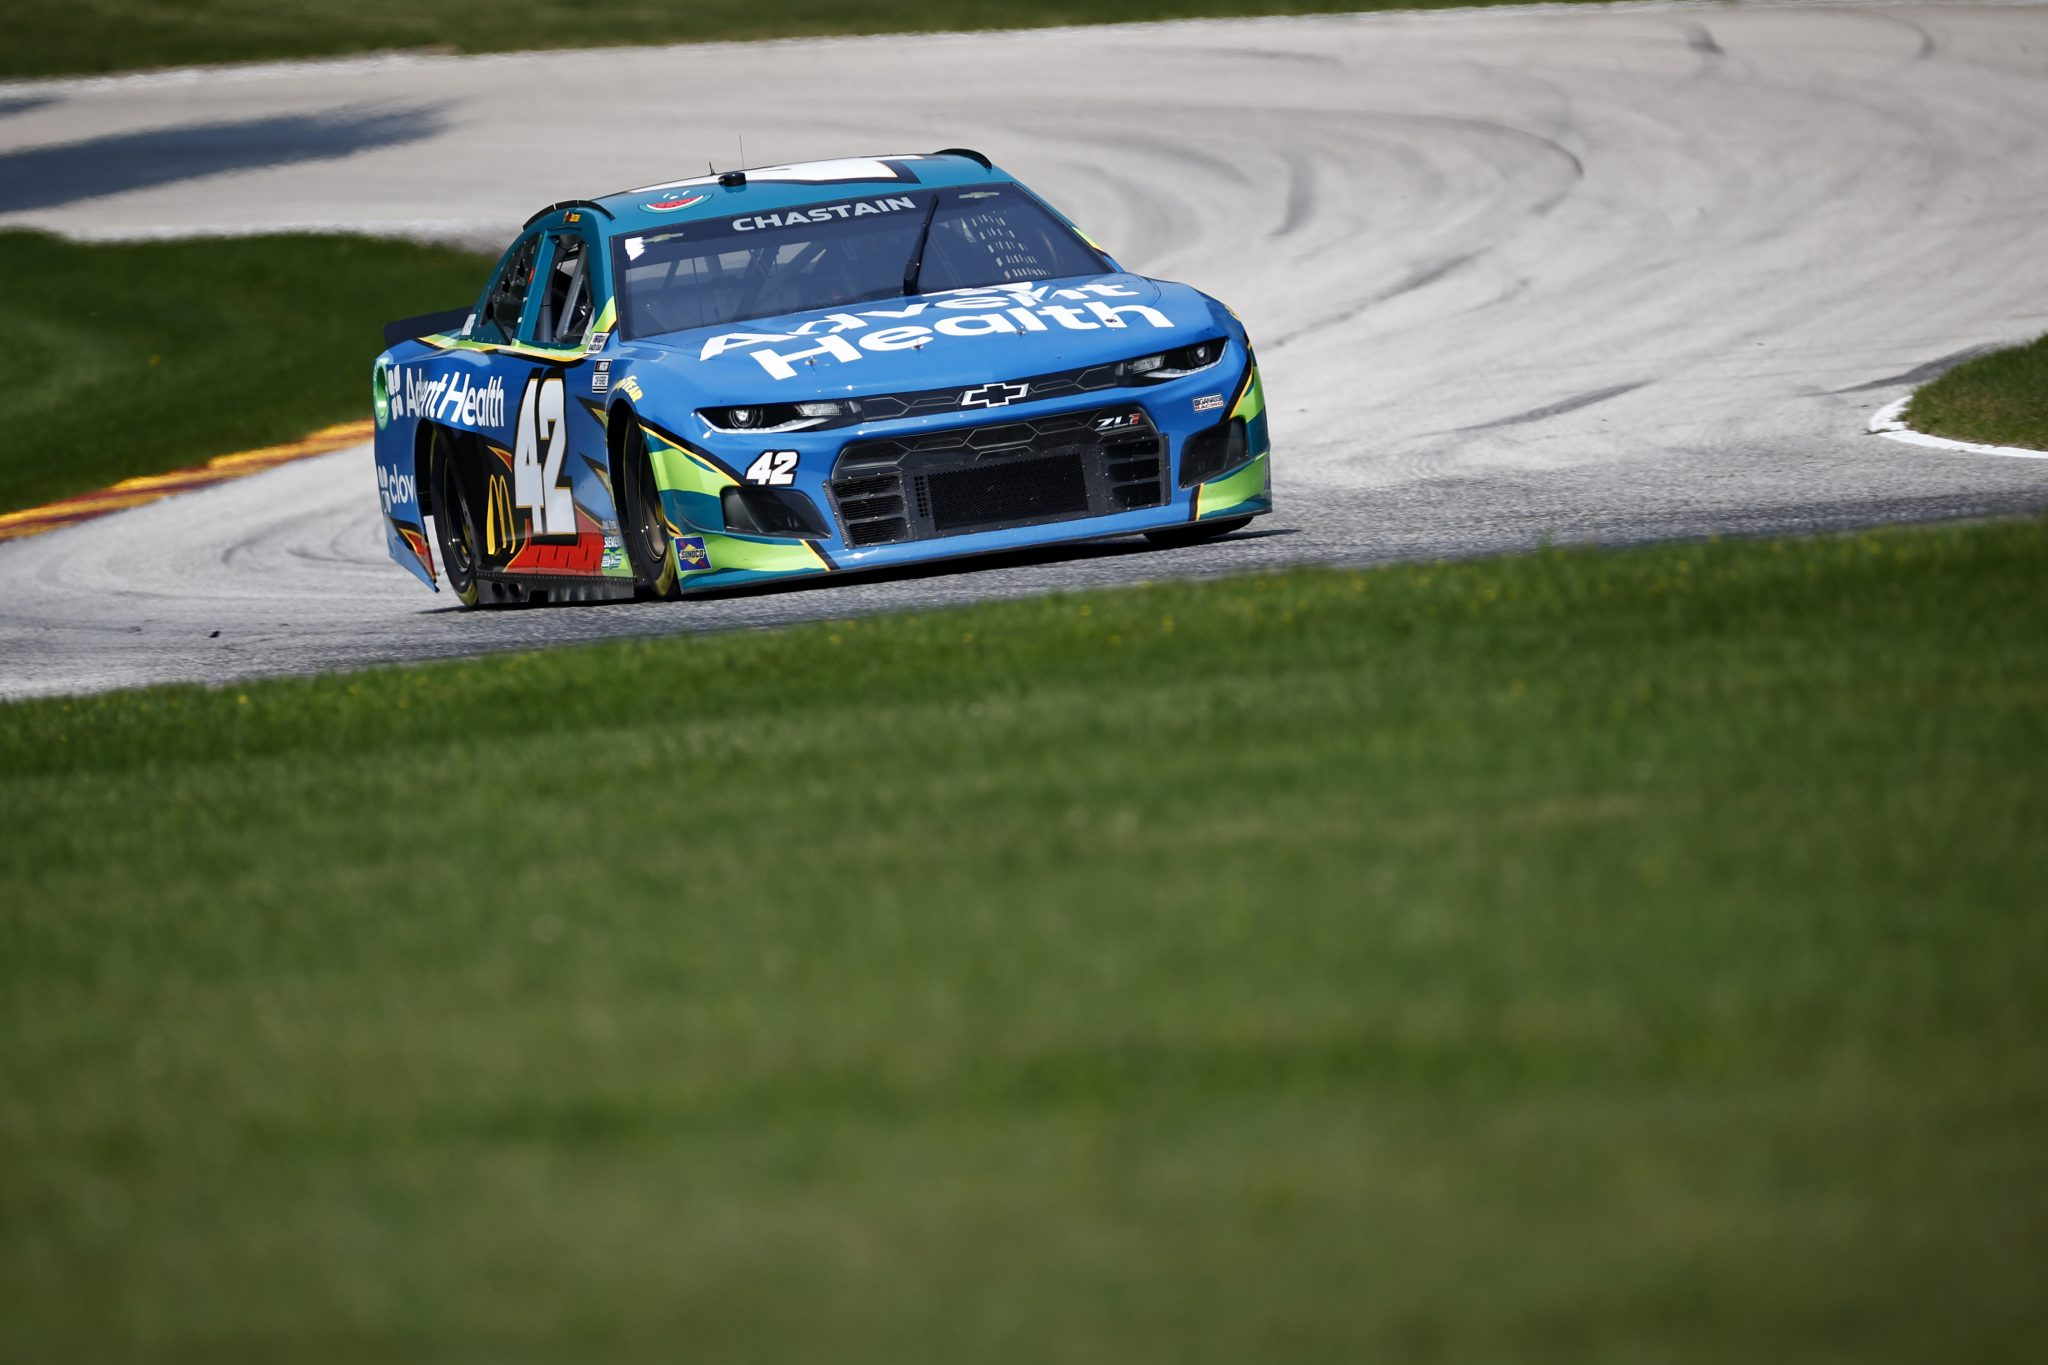 ELKHART LAKE, WISCONSIN - JULY 03: Ross Chastain, driver of the #42 AdventHealth Chevrolet, drives during practice for the NASCAR Cup Series Jockey Made in America 250 Presented by Kwik Trip at Road America on July 03, 2021 in Elkhart Lake, Wisconsin. (Photo by Jared C. Tilton/Getty Images) | Getty Images